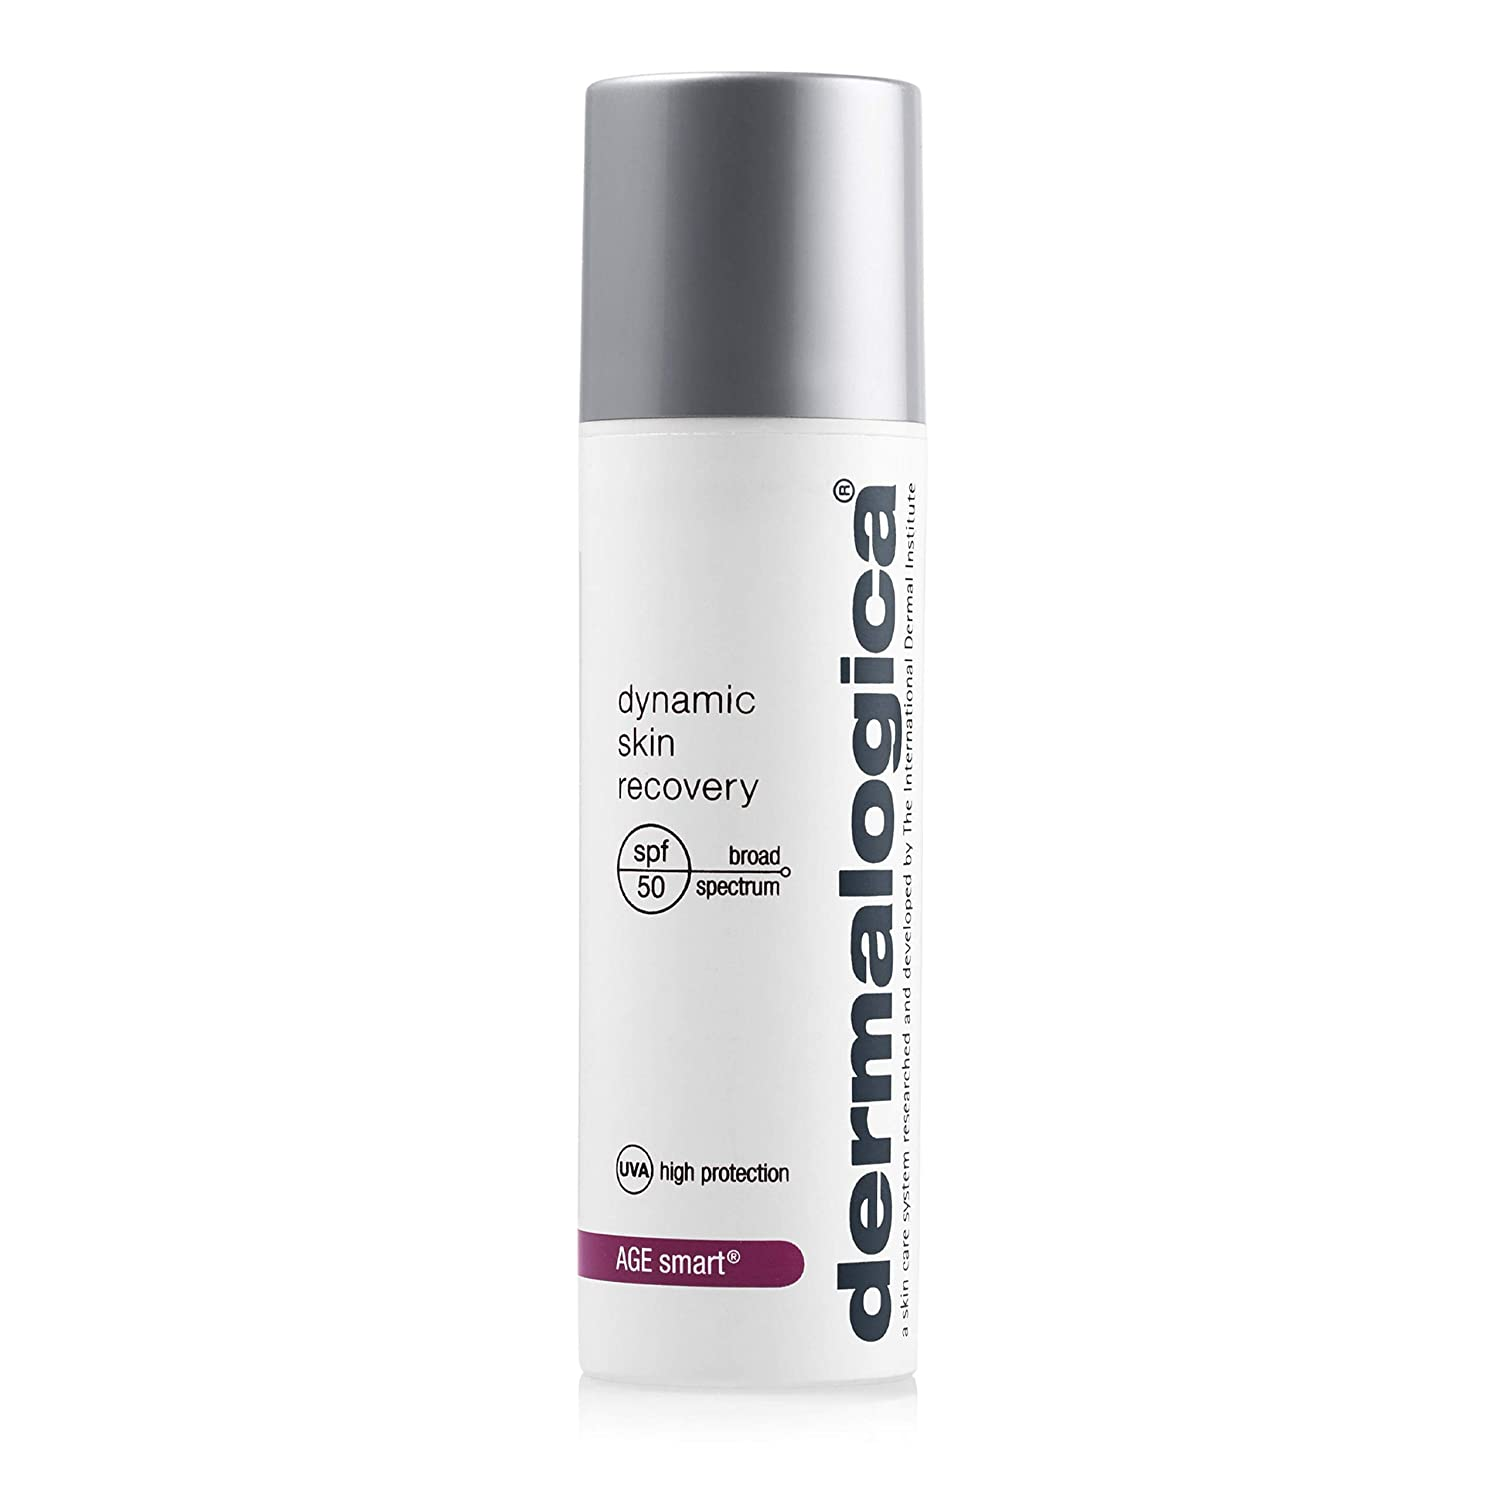 Dermalogica Dynamic Skin Recovery SPF50 - Anti-Aging Face Sunscreen Moisturizer, Medium-Weight Non-Greasy Broad Spectrum to Protect Against UVA and UVB Rays